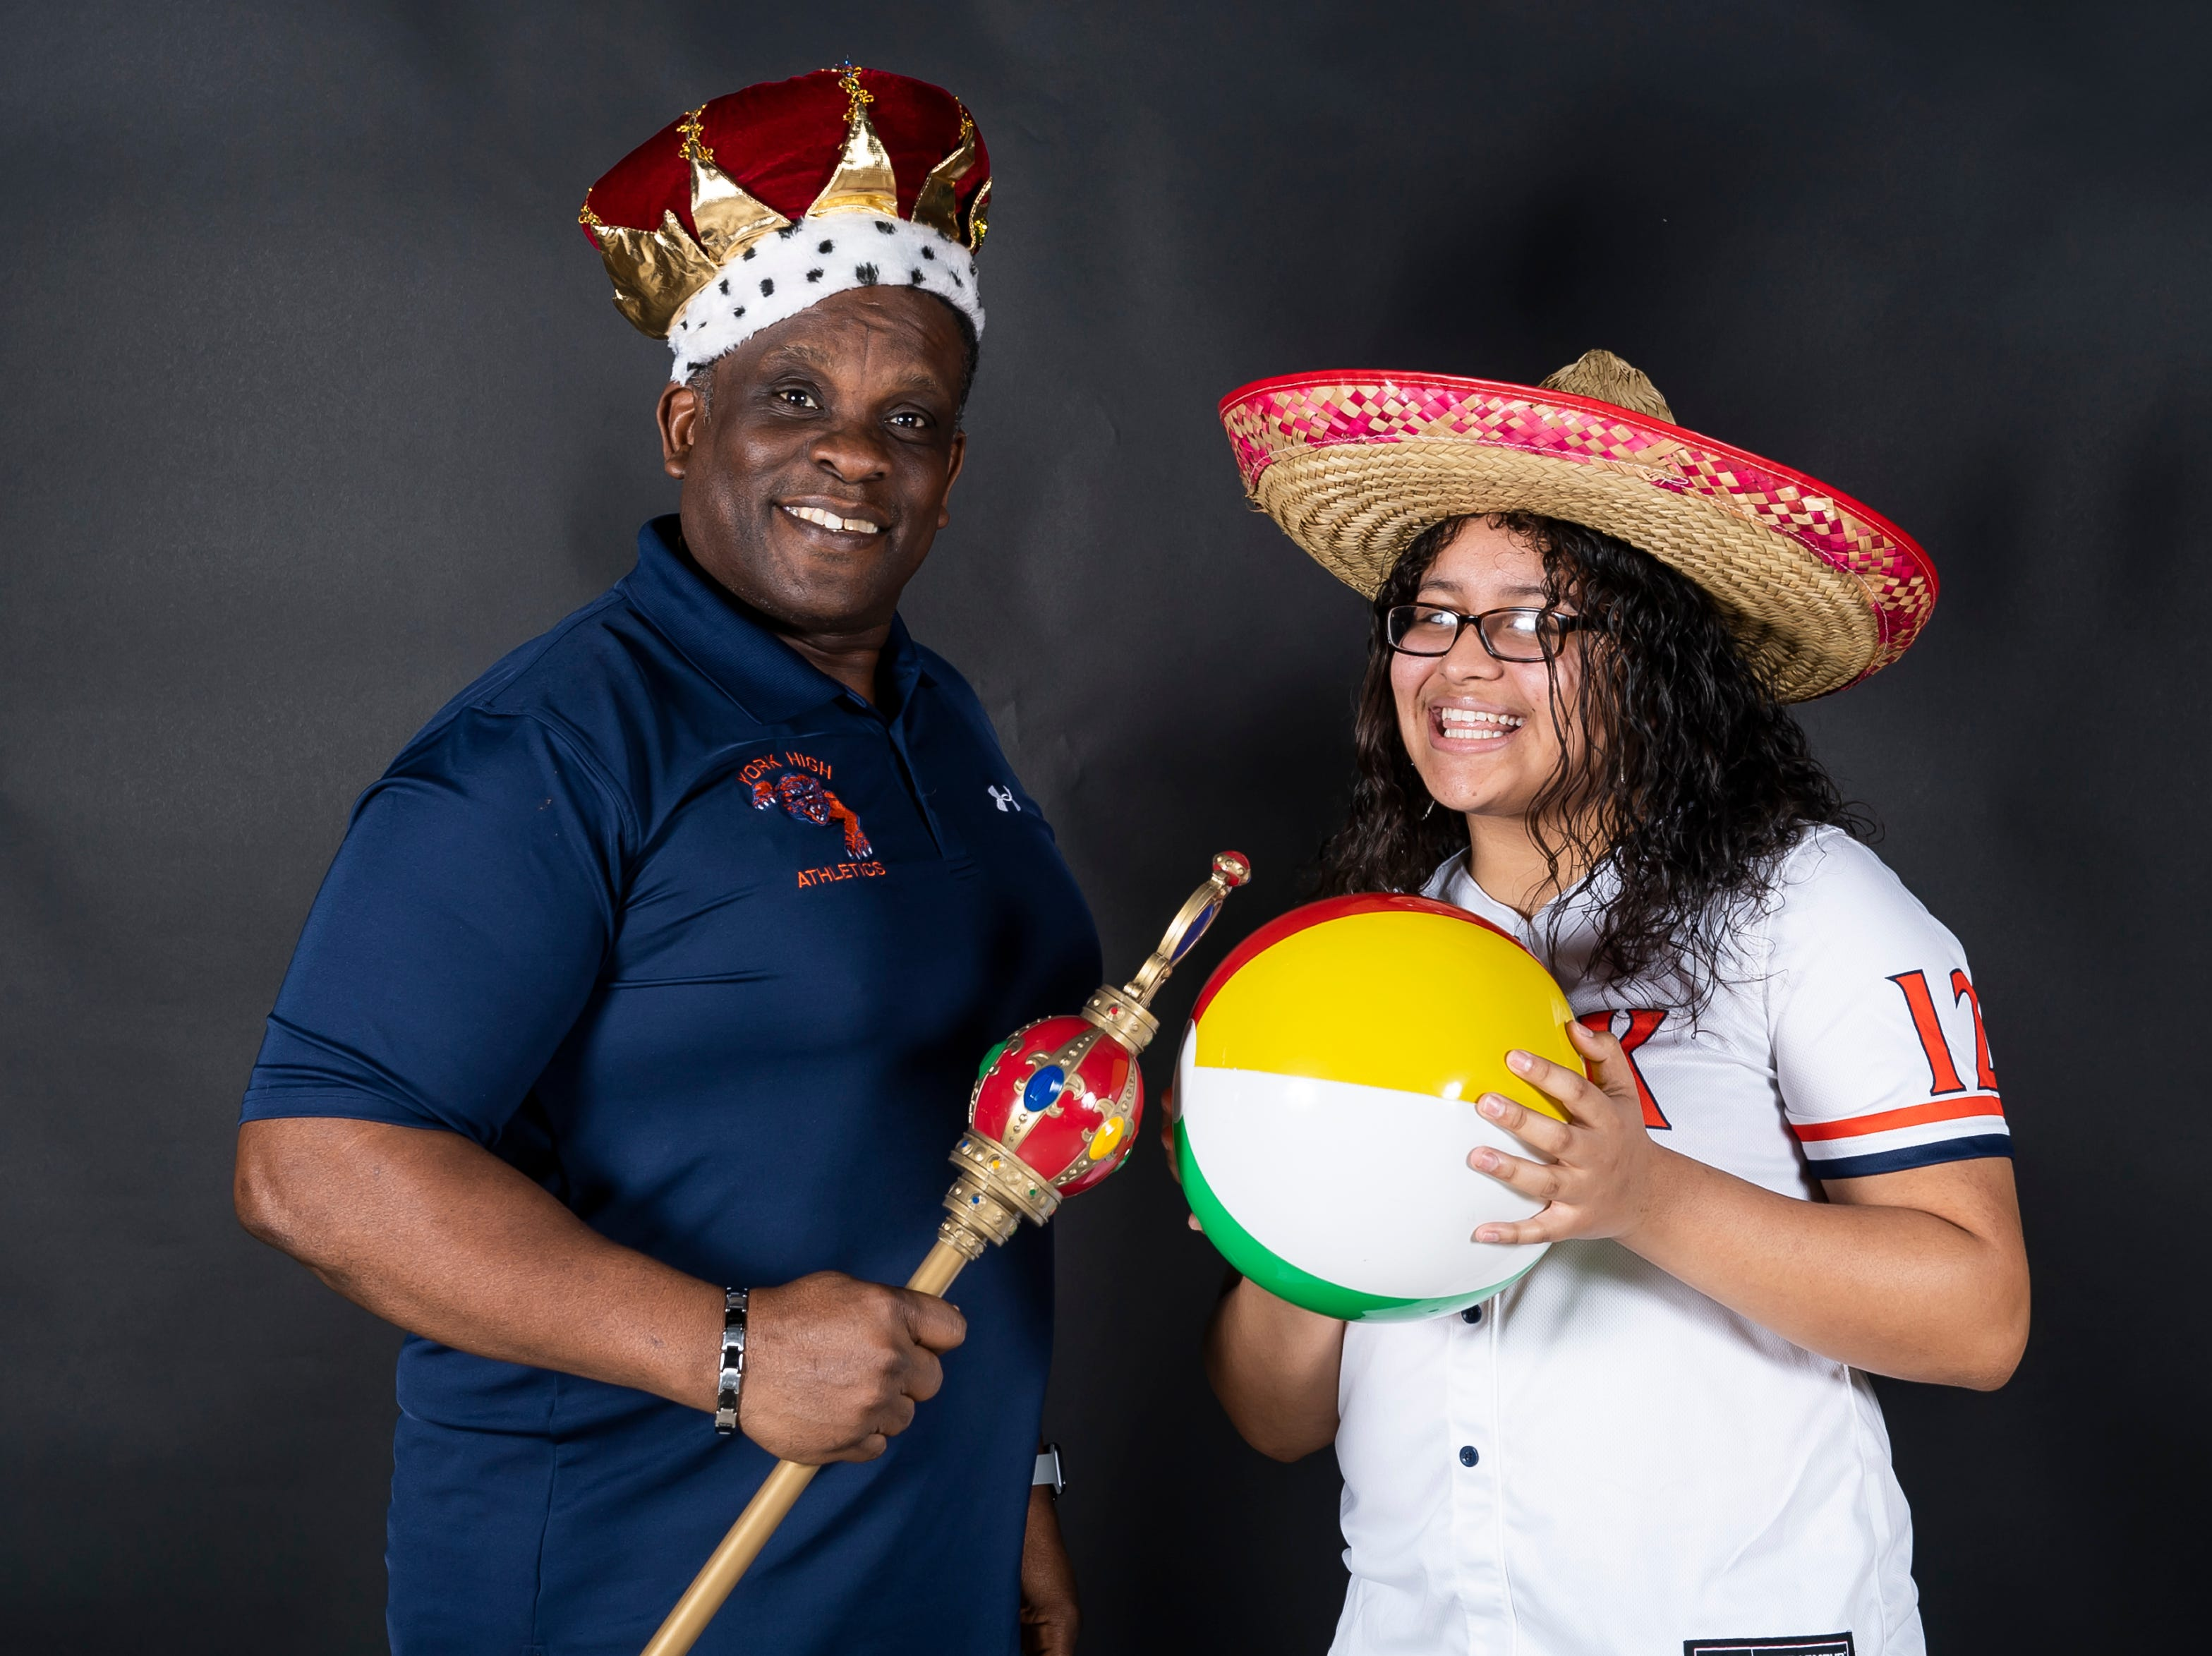 York High softball Eric Cox and player Jesska Moreno strike a pose in the GameTimePA photo booth during spring sports media day in York Sunday, March 10, 2019.